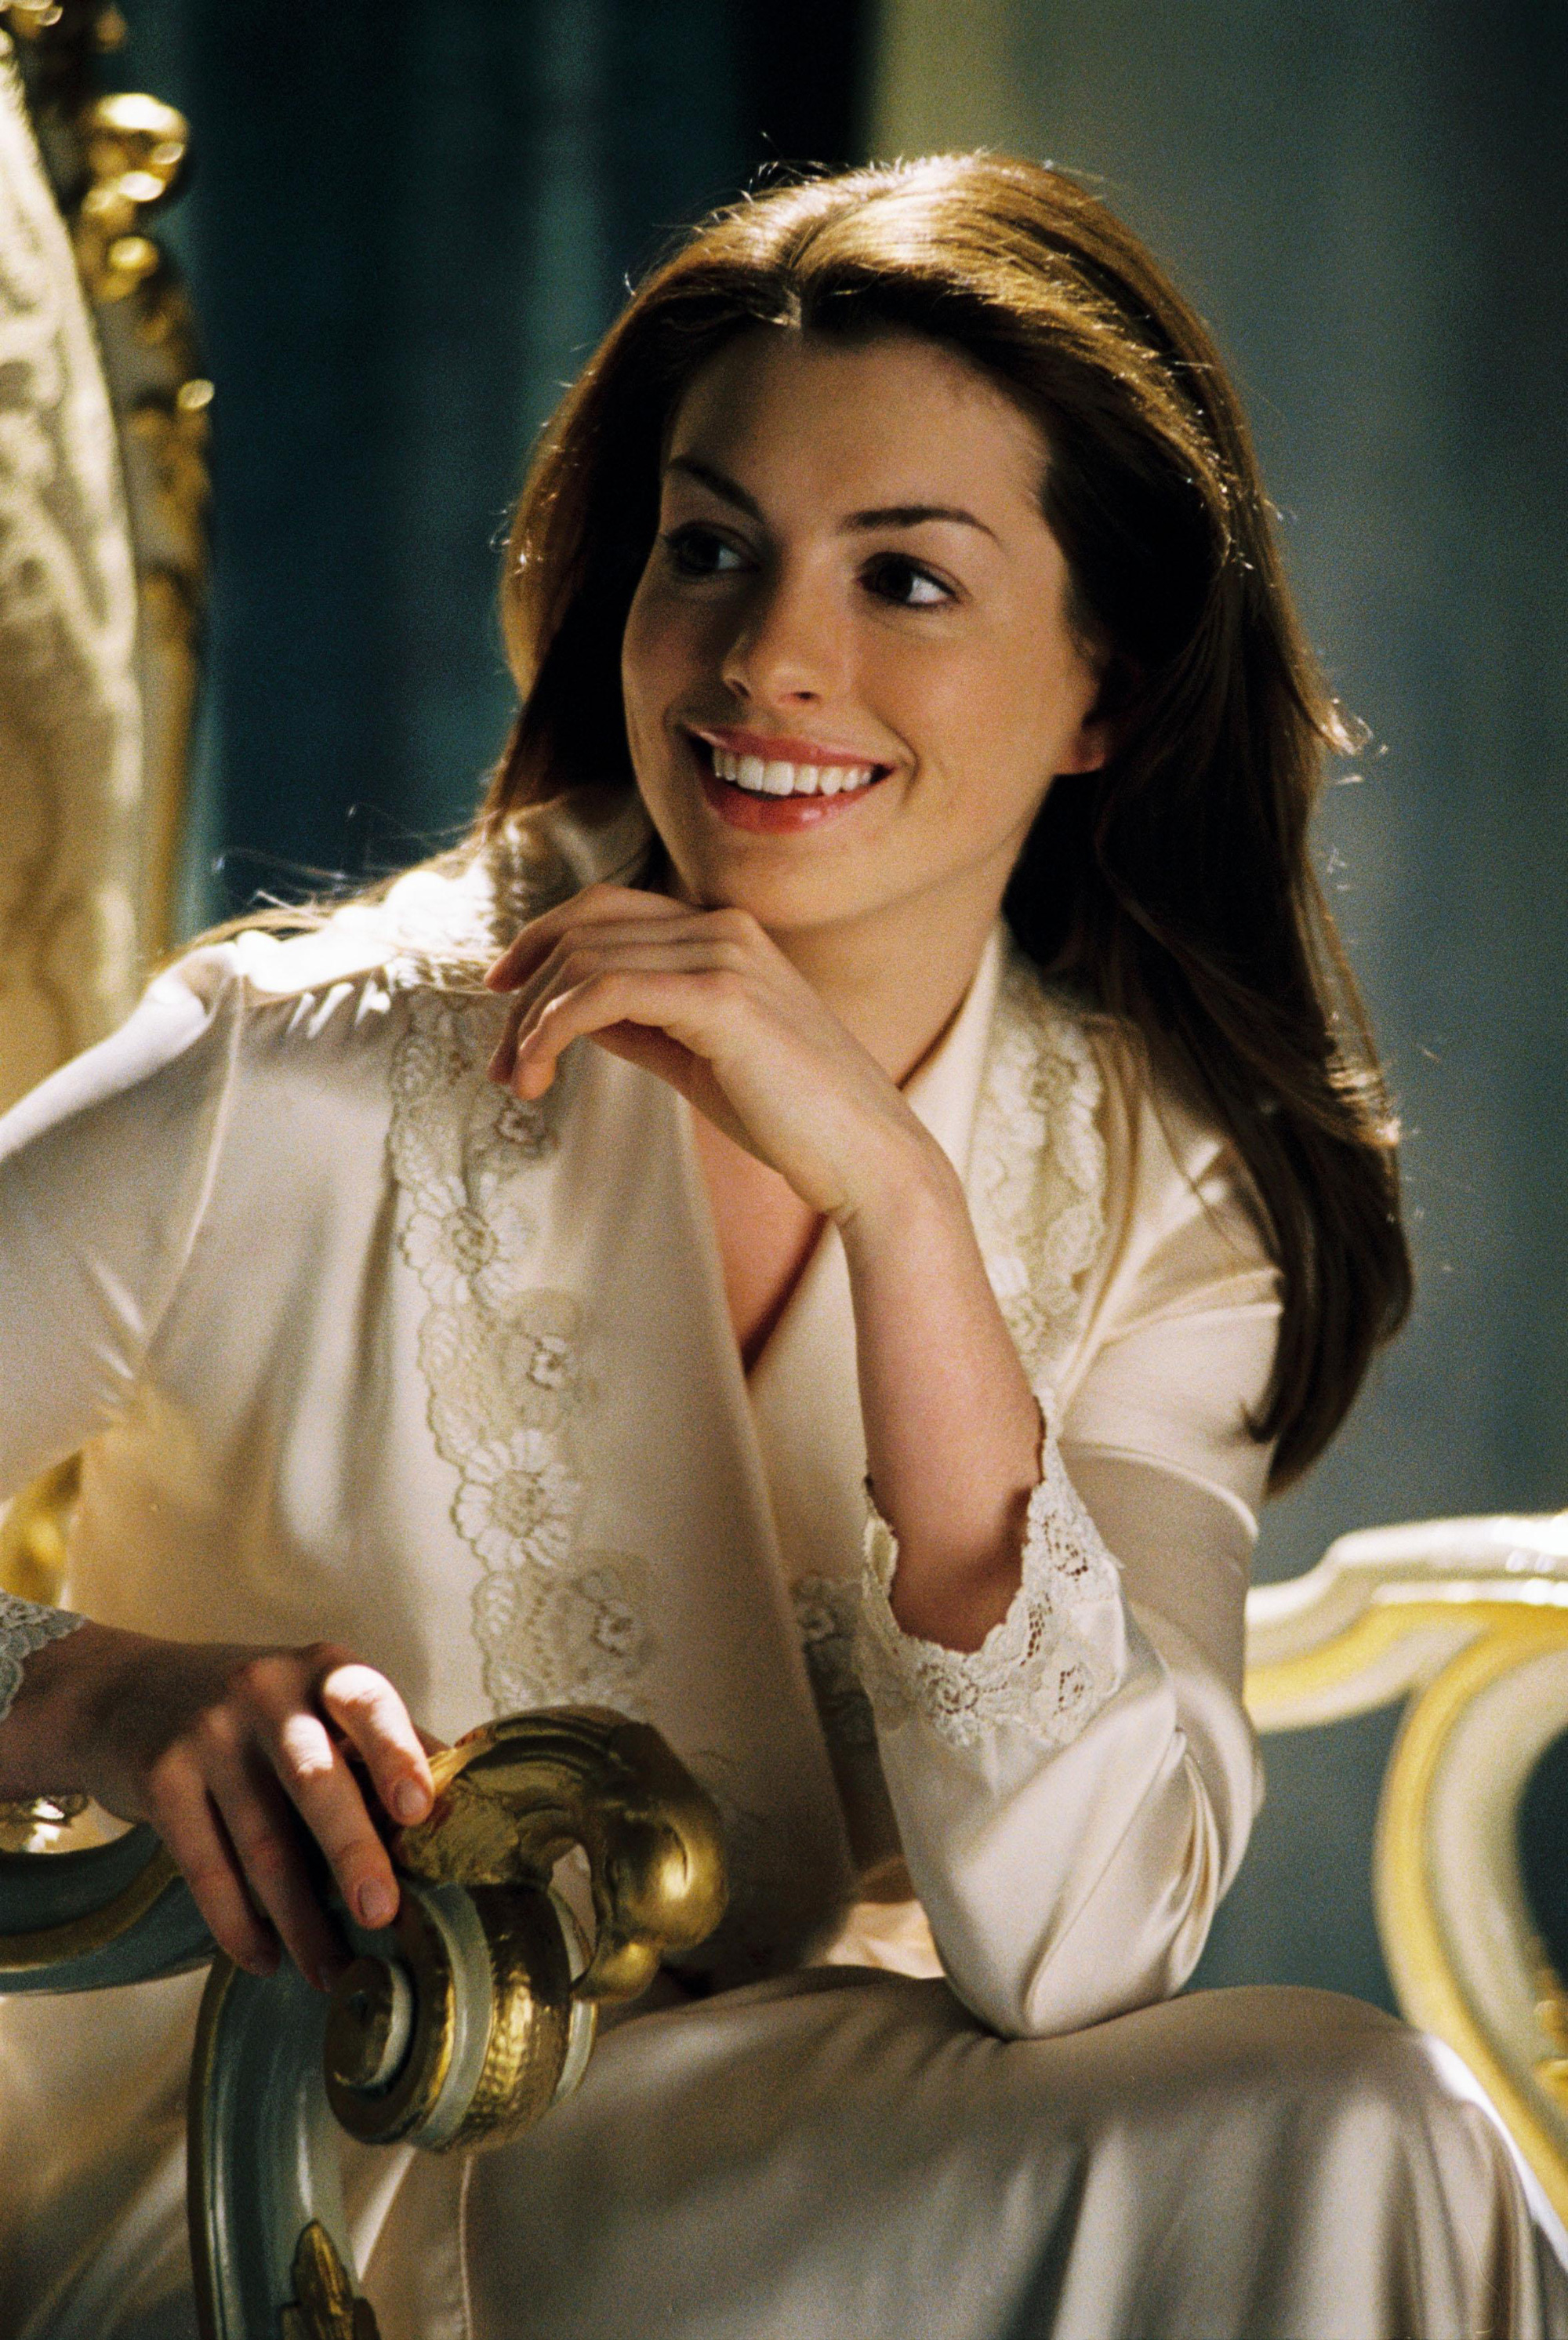 Fascinated by the image of the giant busty goddess Anne Hathaway changing a princess: The beauty of a Hollywood treasure, a royal aura that is ill-suited - Photo 7.